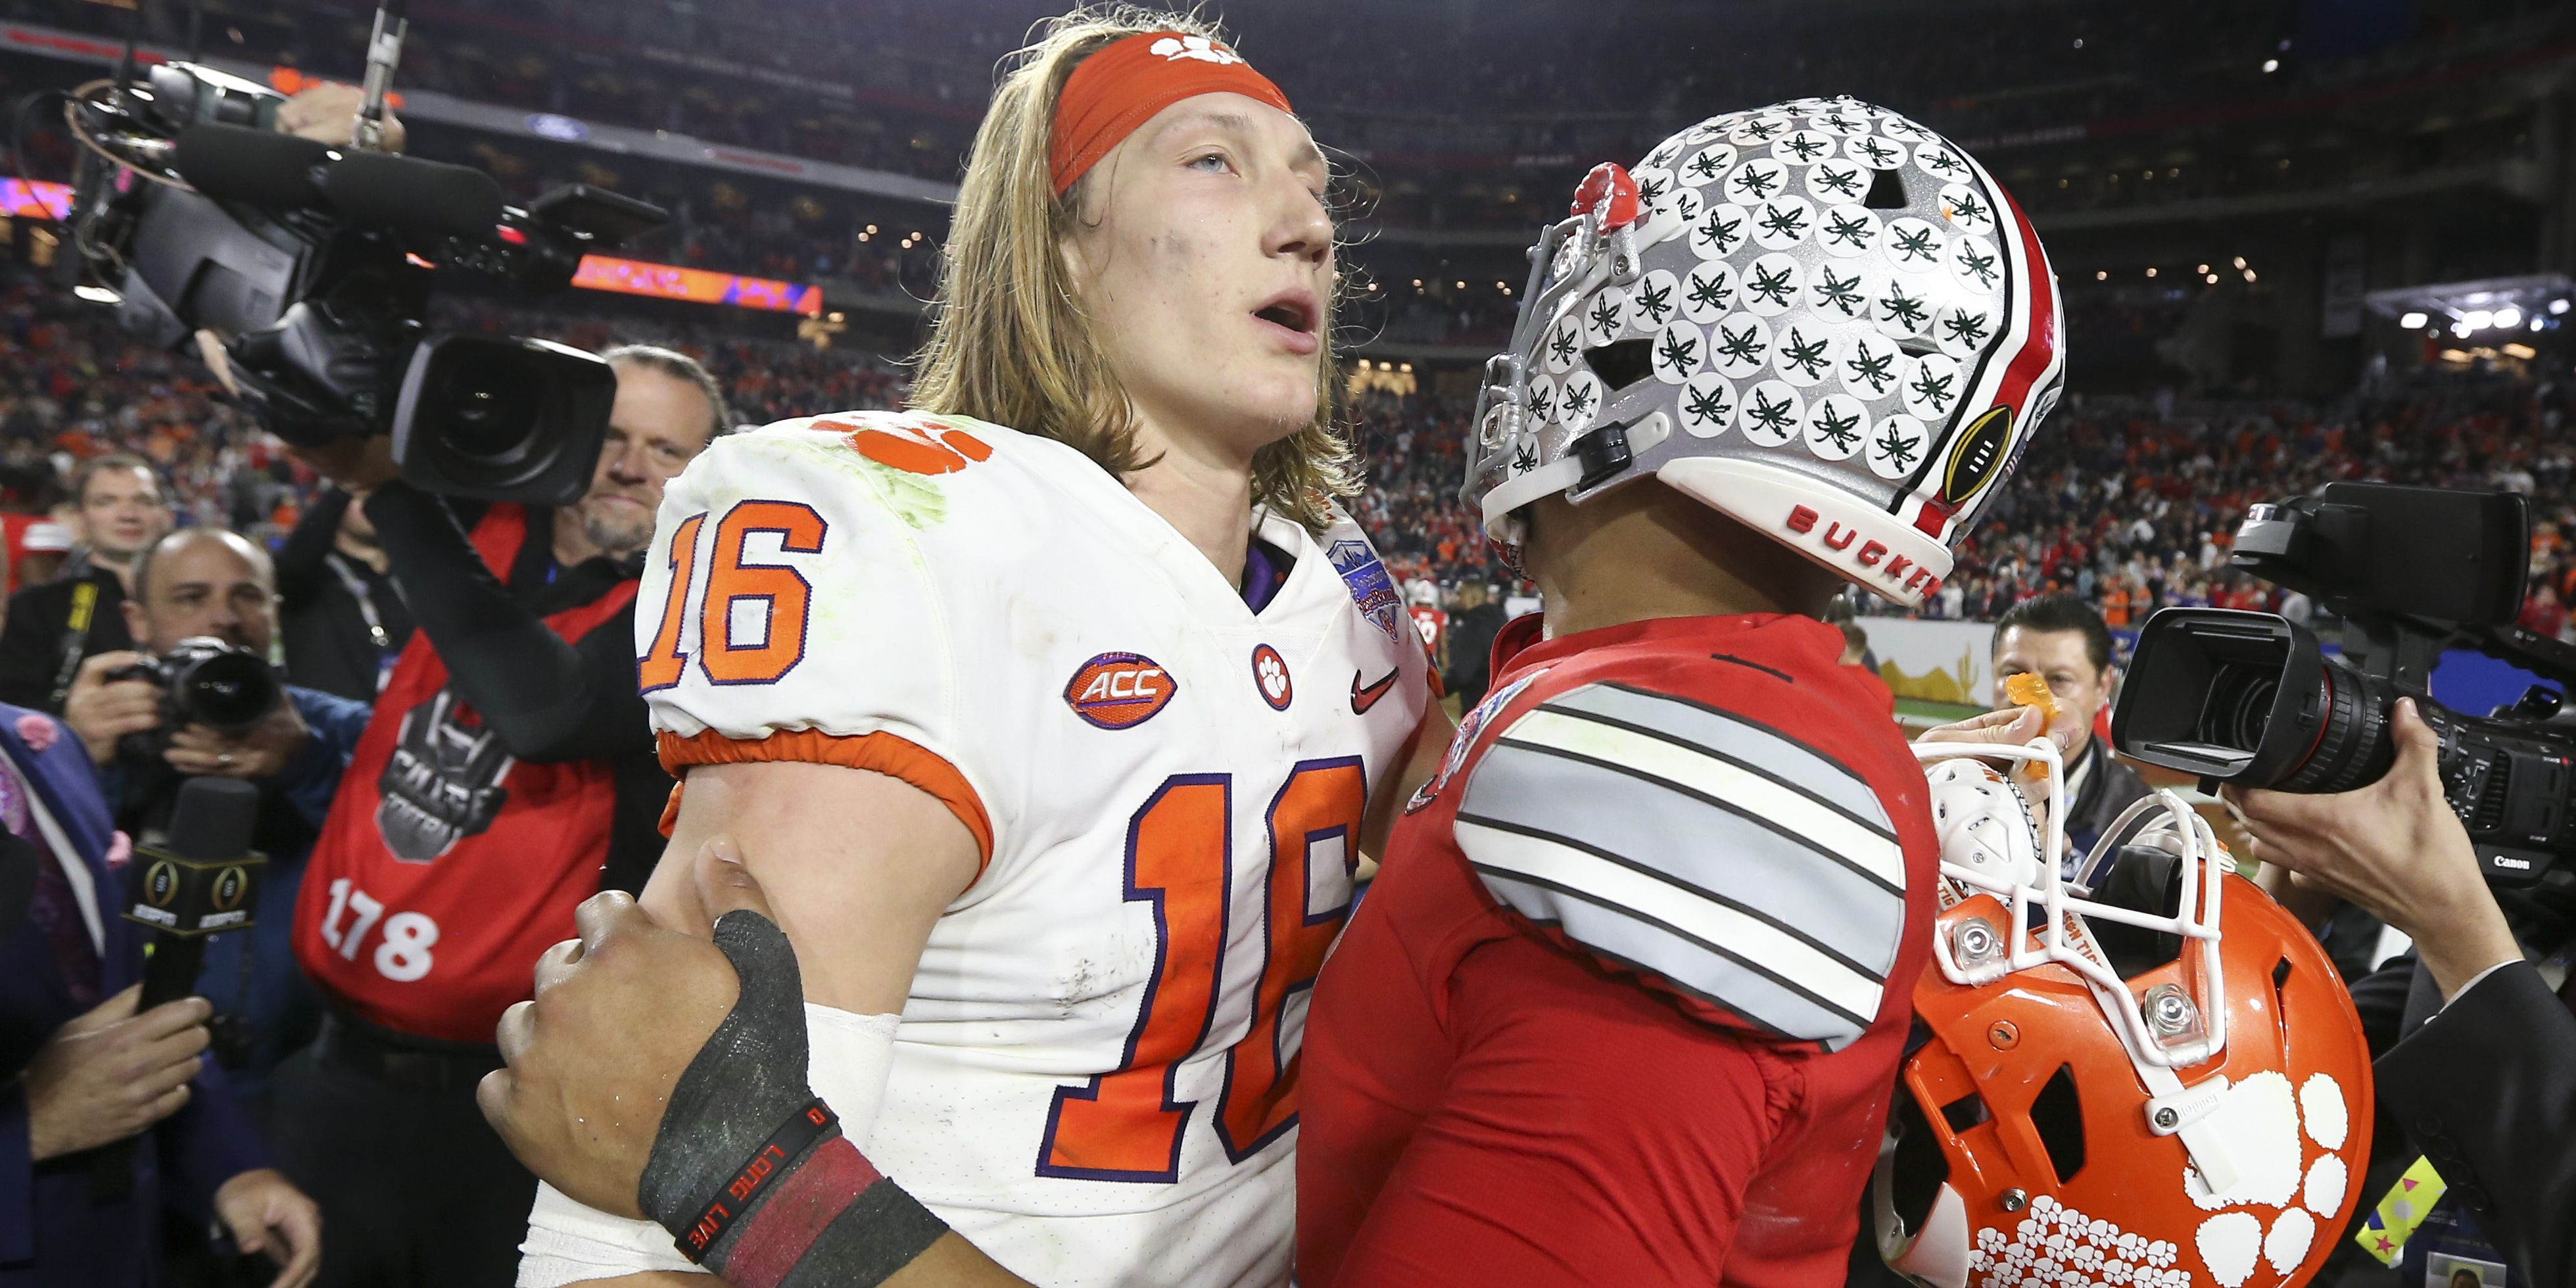 Ohio State's season ends with 29-23 loss to Clemson